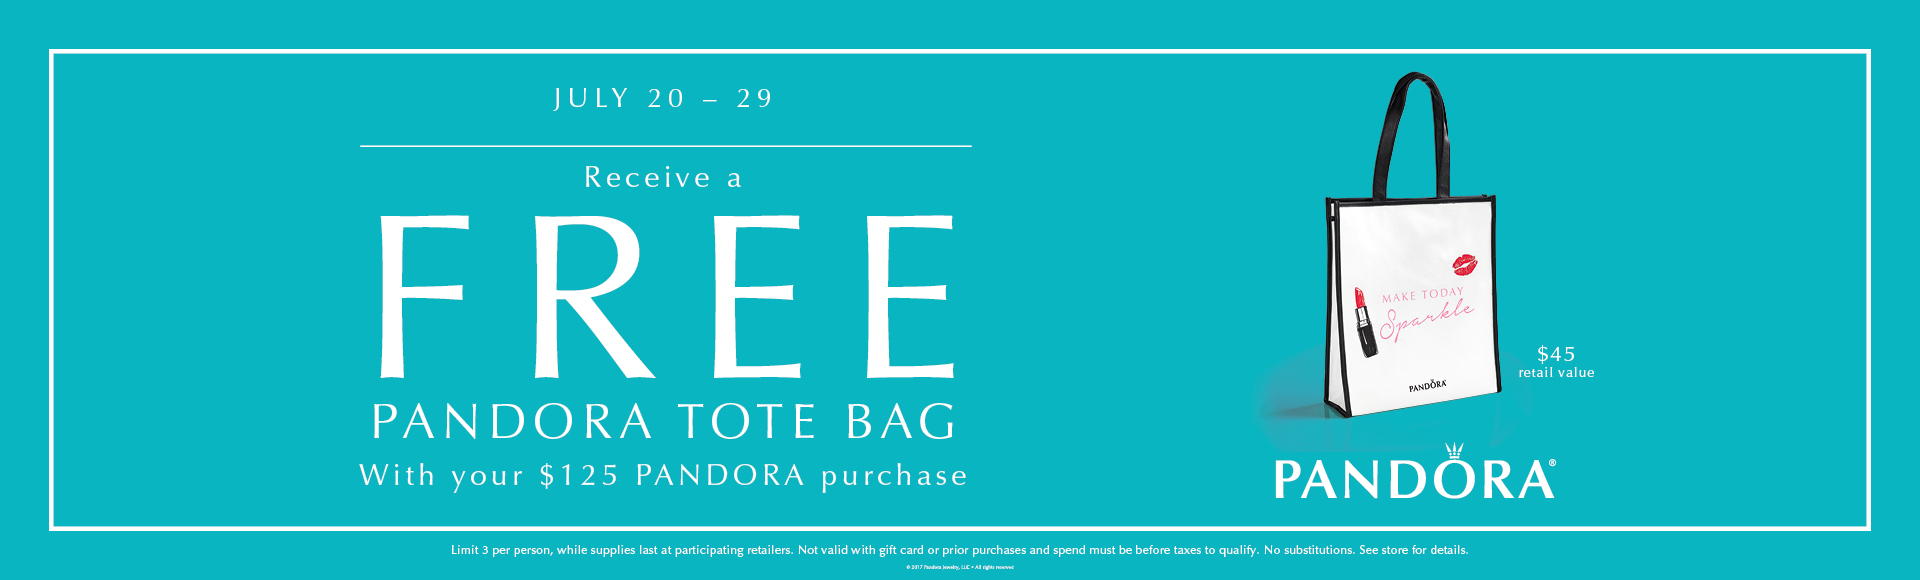 Pandora Free Tote Bag GWP Event!